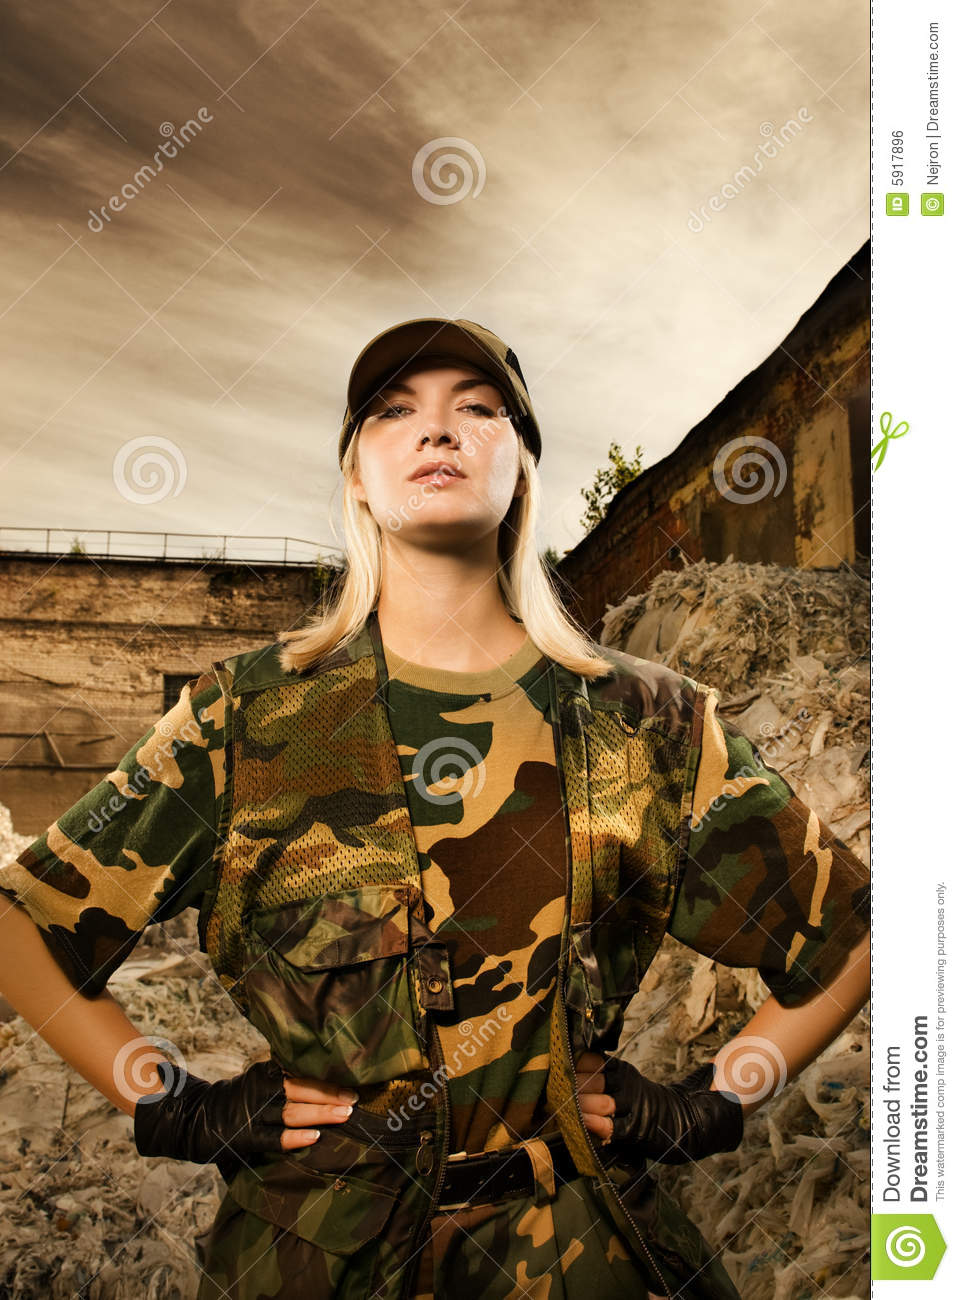 Angry Female Soldier Royalty Free Stock Image Image 5917896